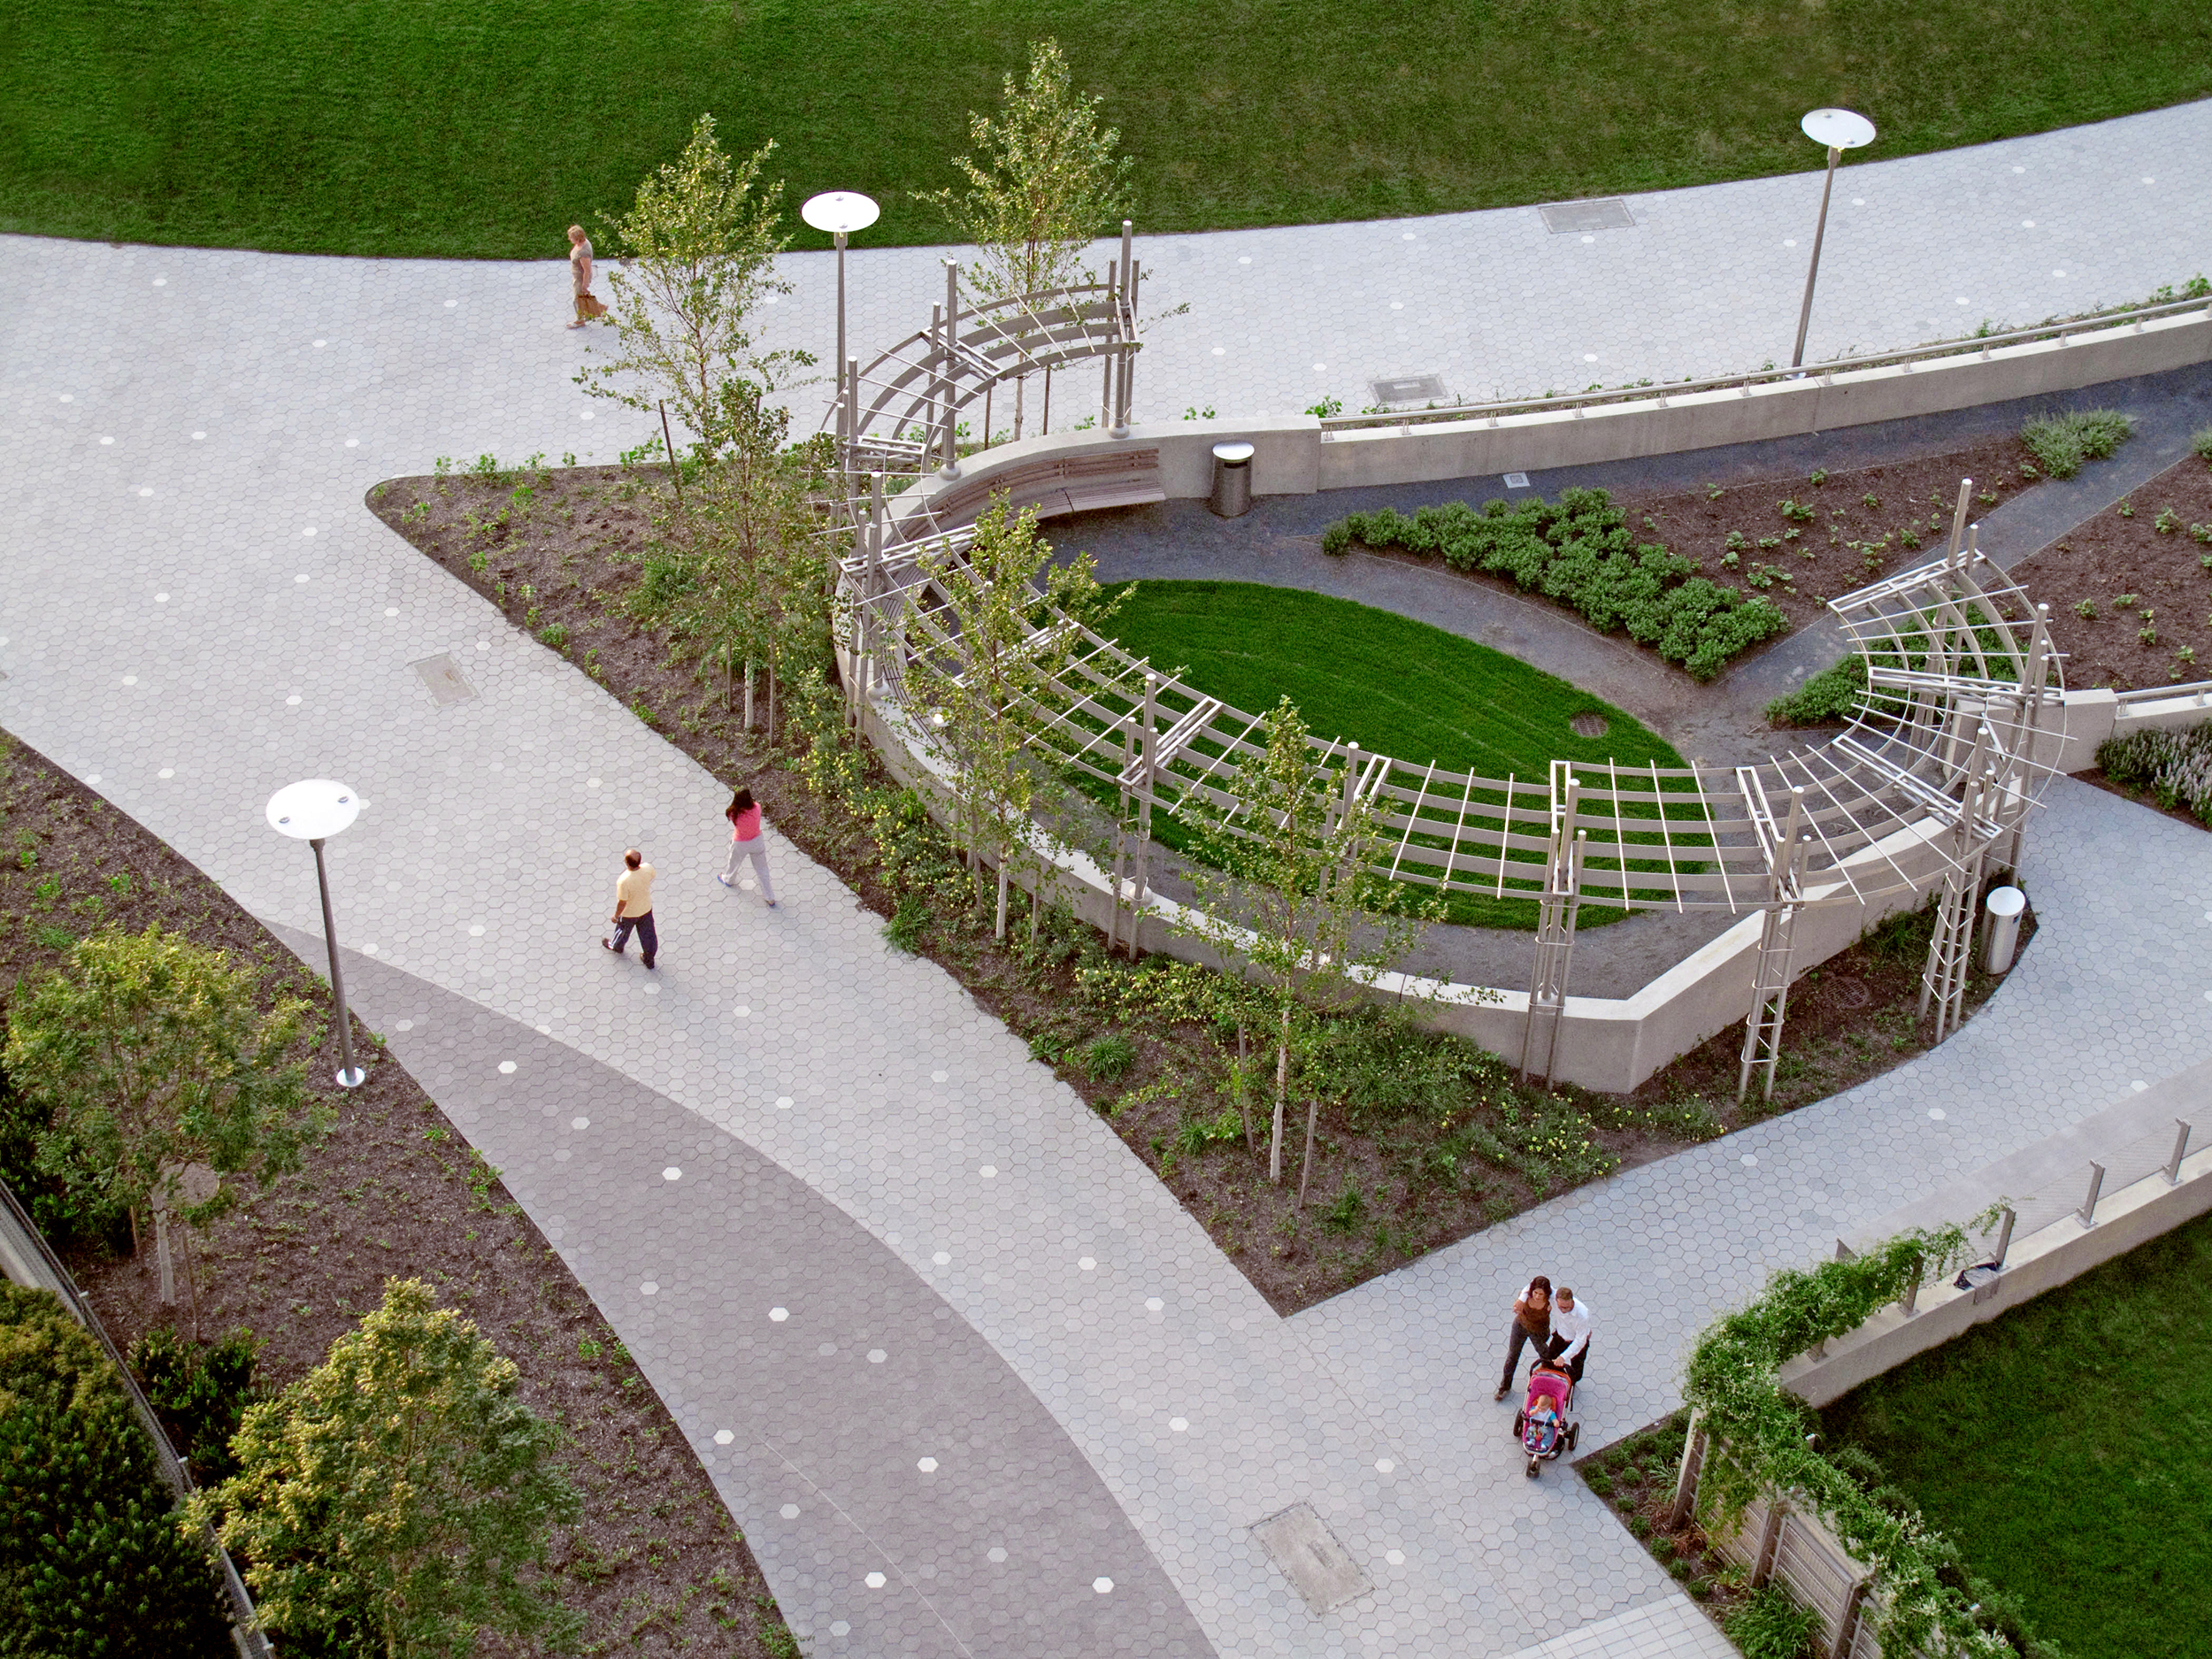 View of Community Garden and Paving at Gantry Plaza State Park